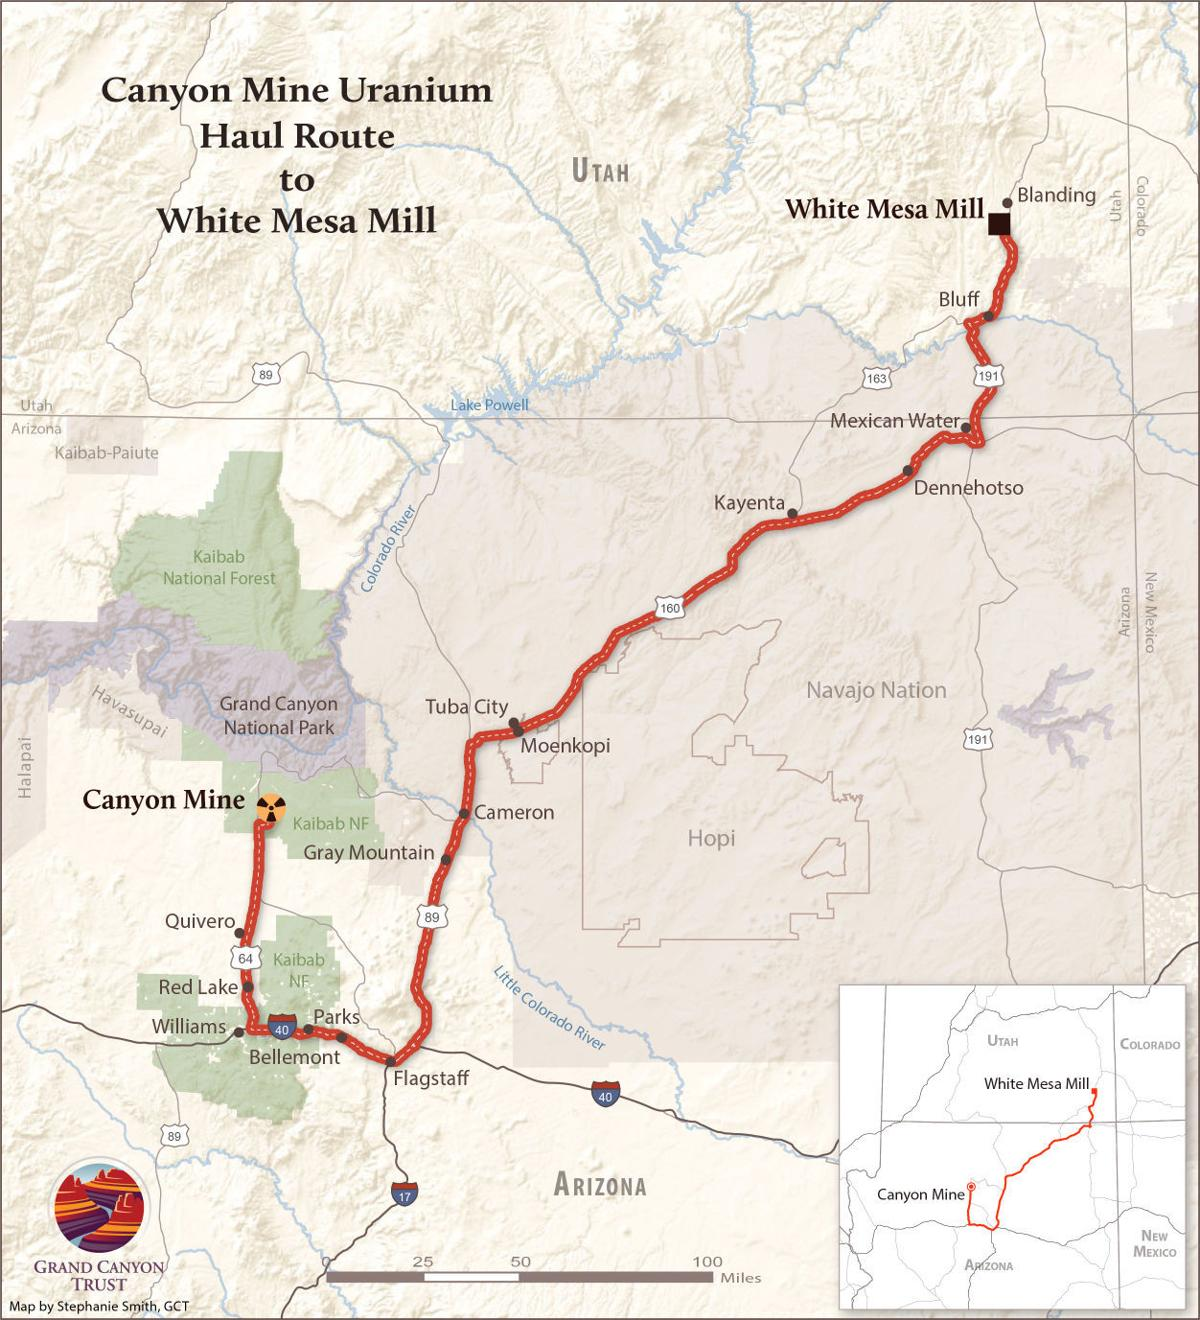 Canyon mine haul route